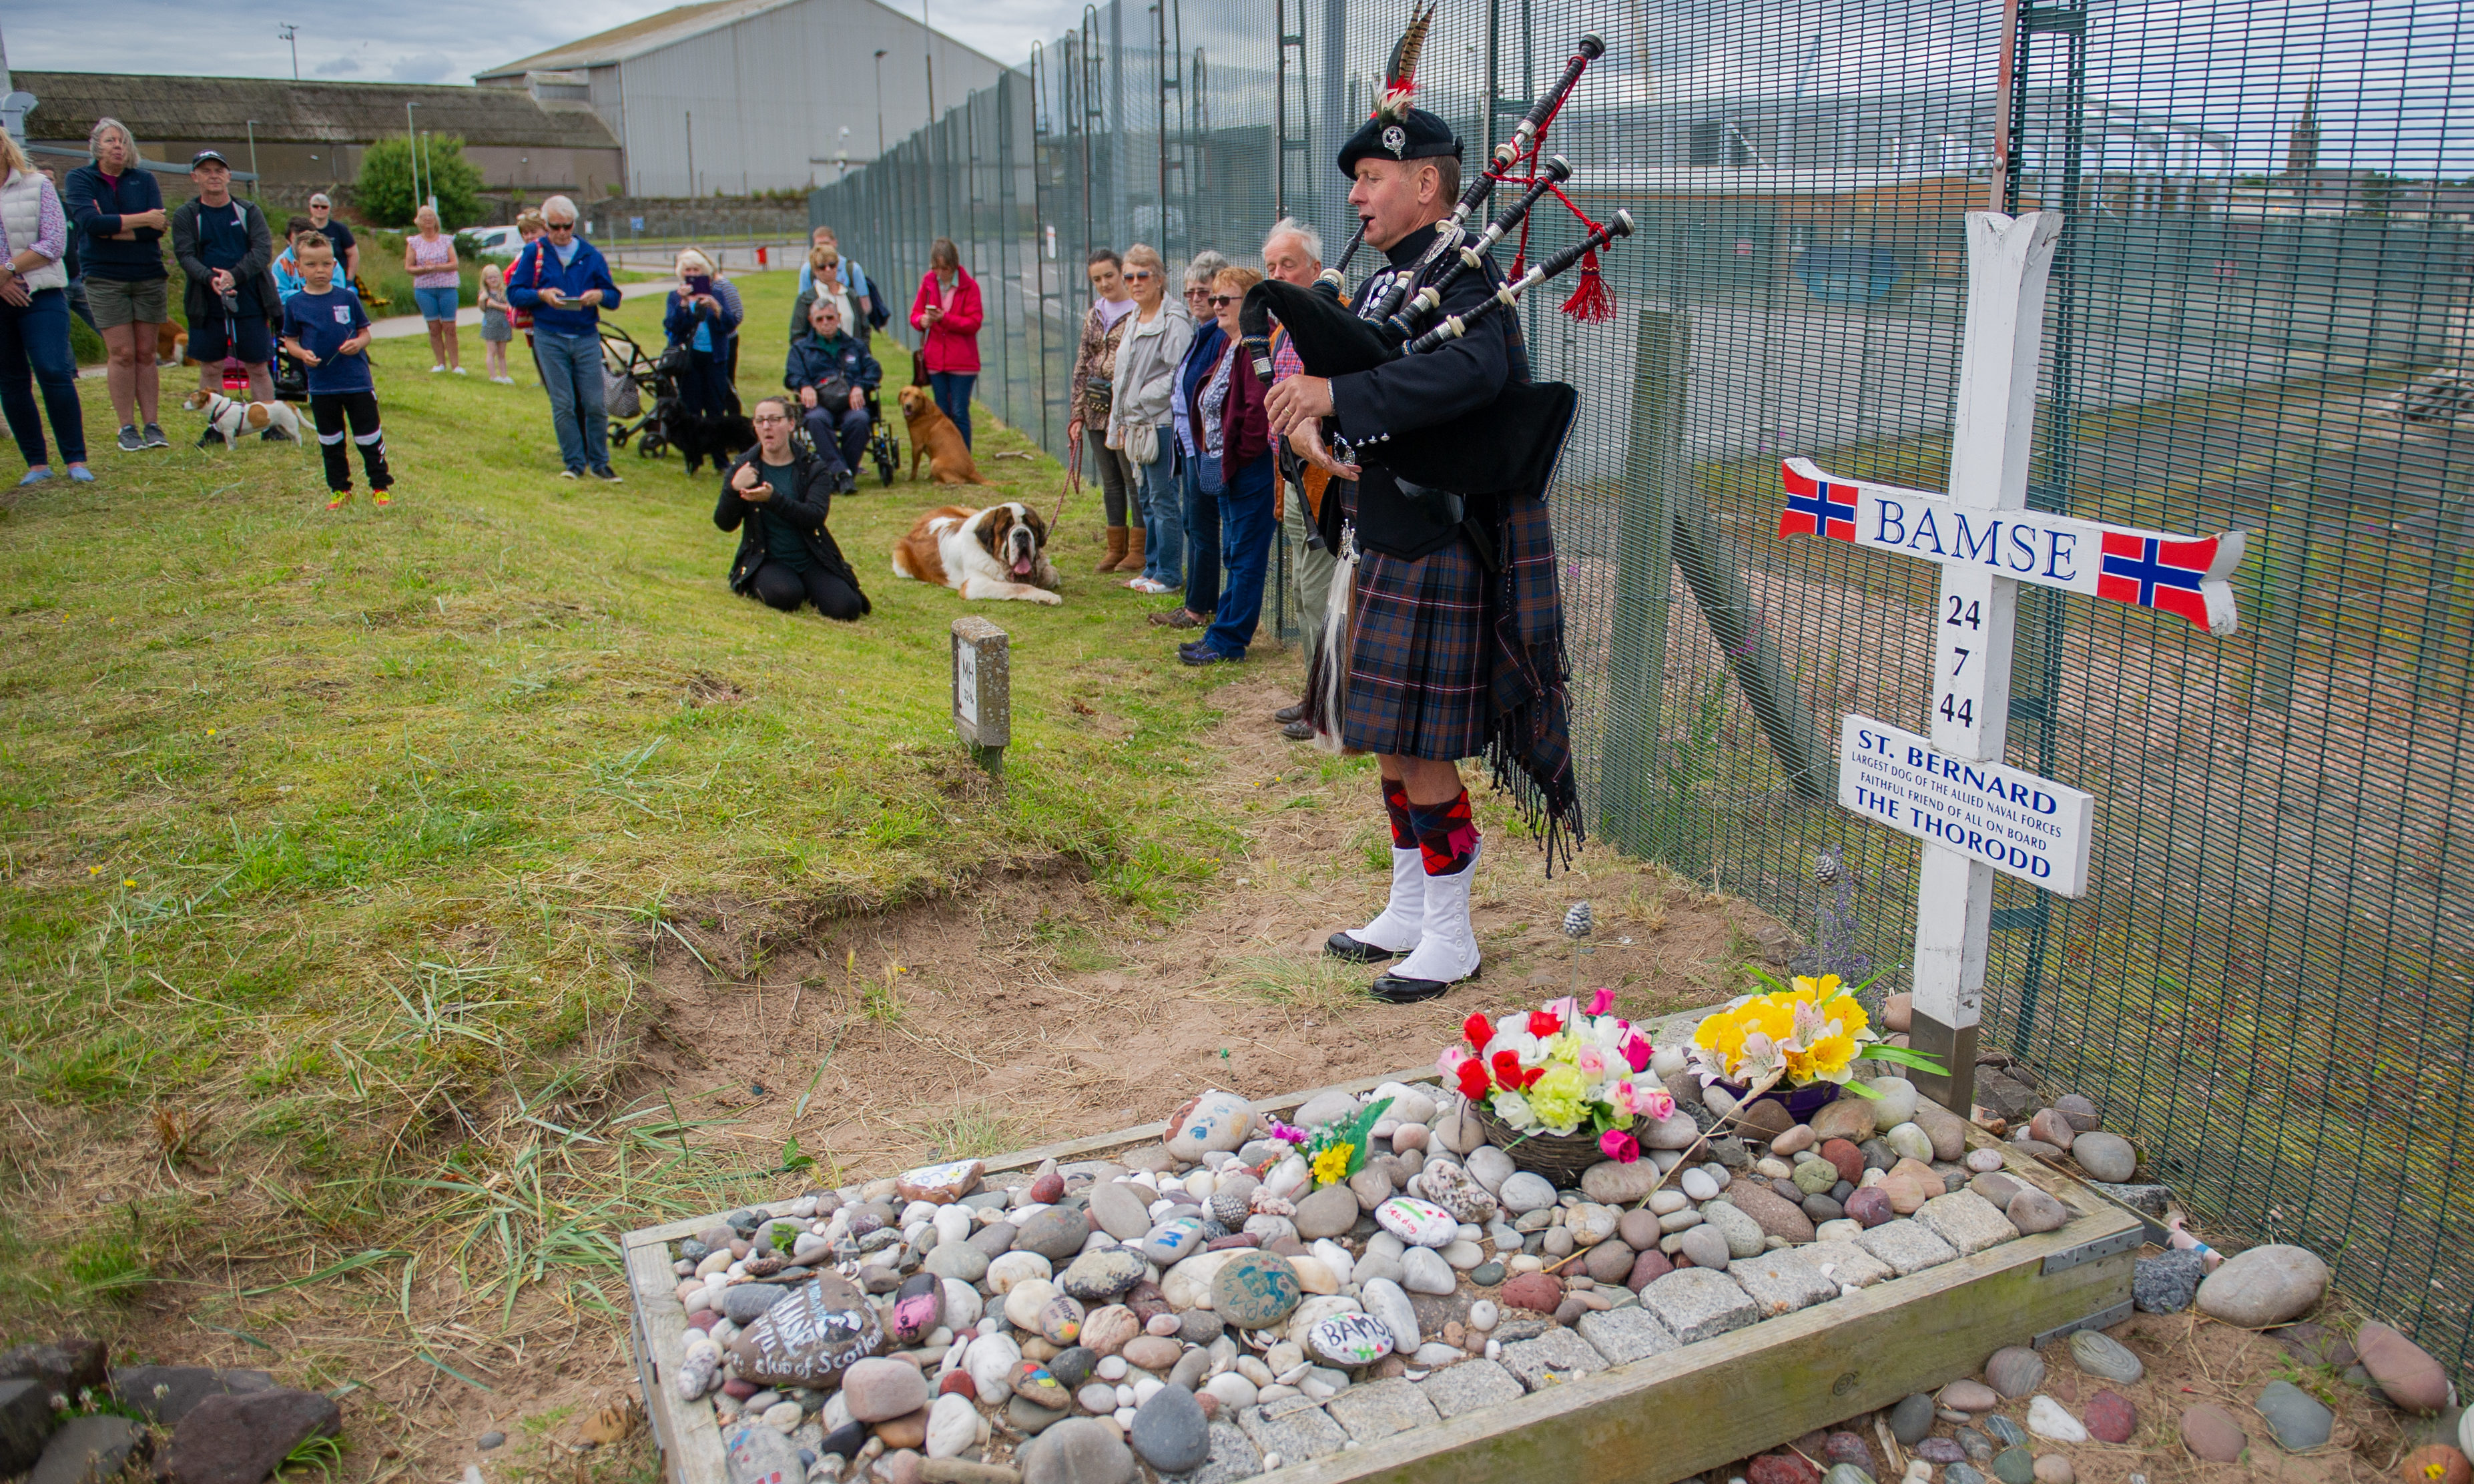 A piper plays at Bamse's grave to mark 75 years since his passing in 2019.